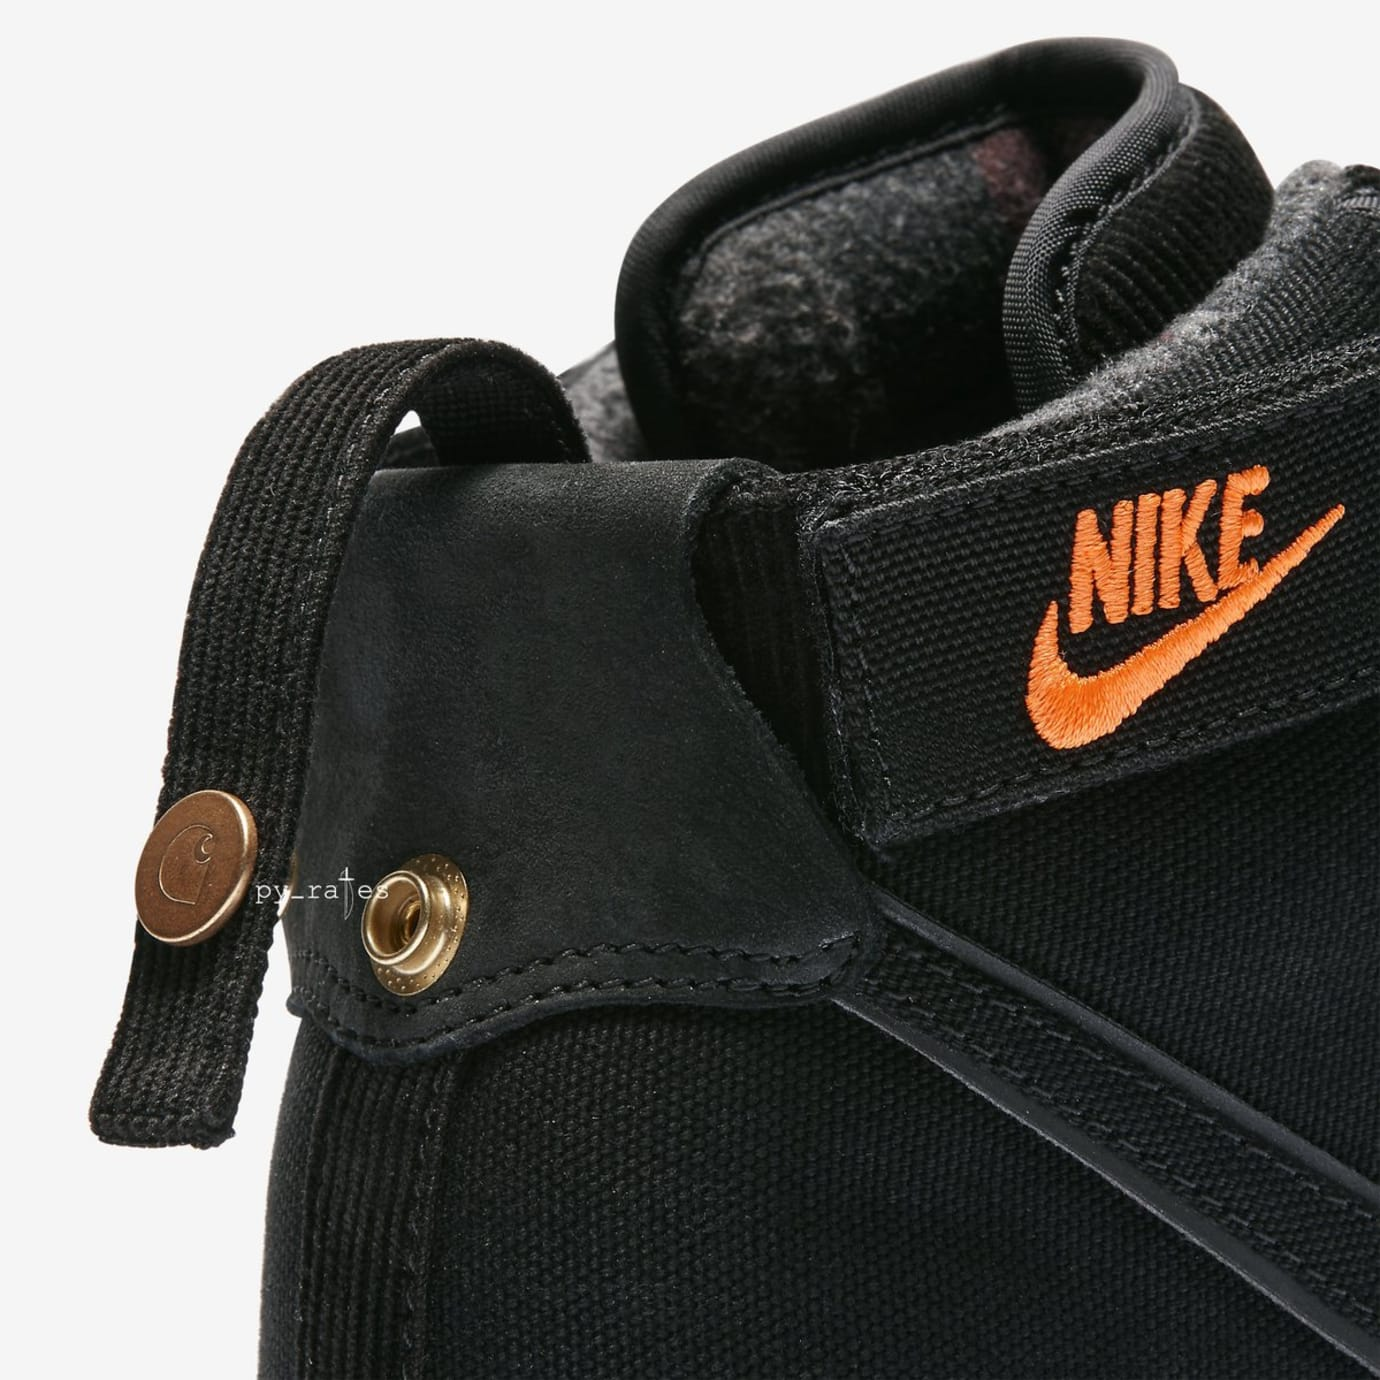 detailed look d60db c8d57 ... Carhartt WIP x Nike Vandal High Supreme